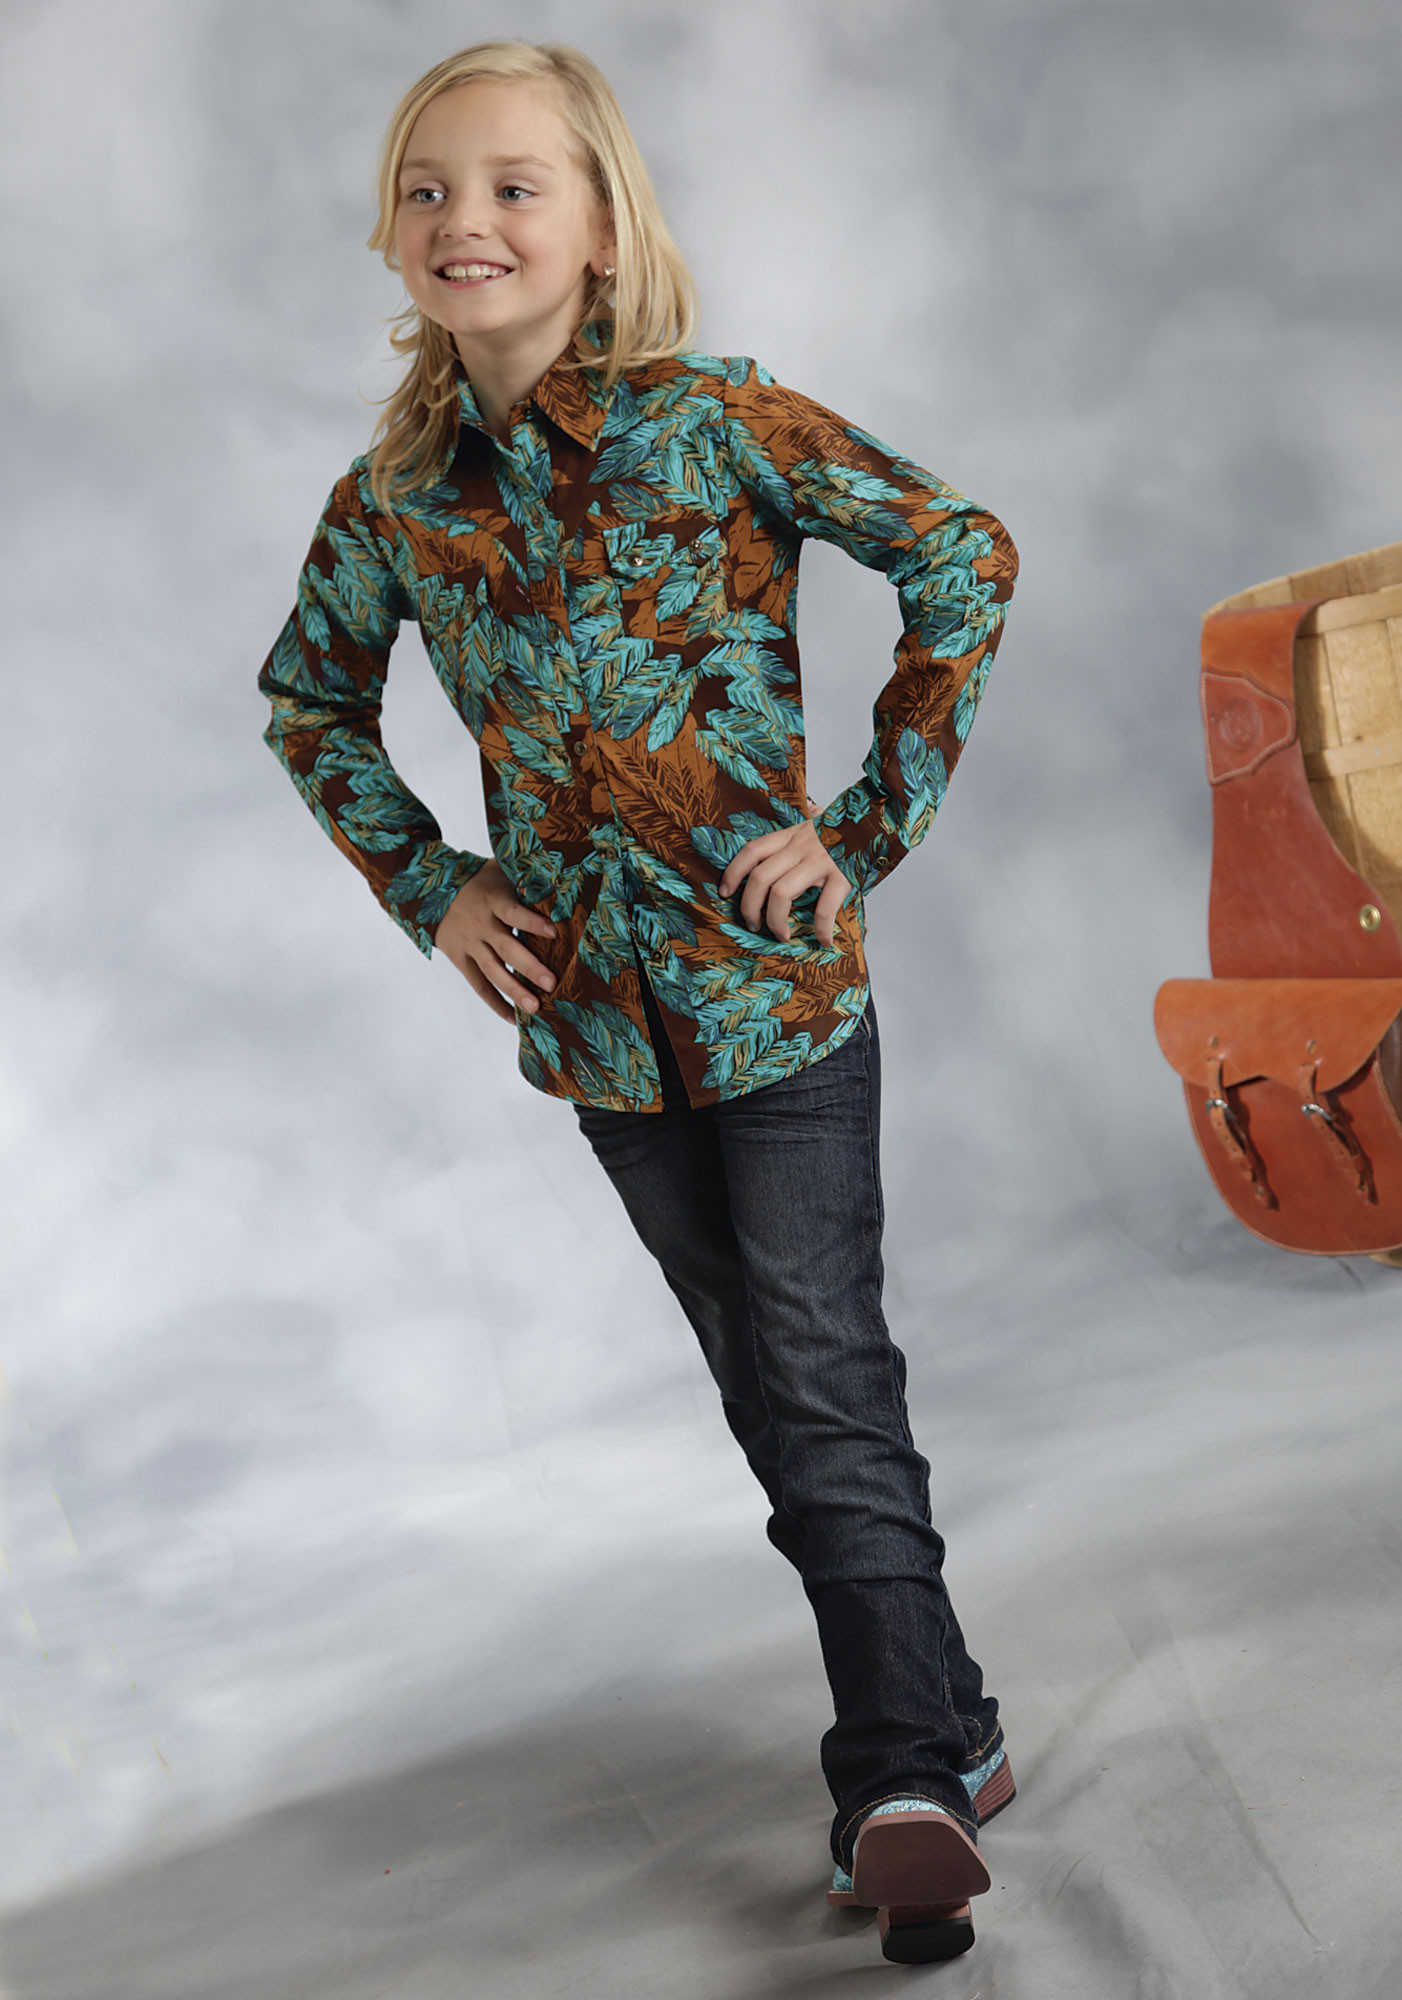 roper girls Roper riding sneakers at unbeatable prices here at horseloverzcom horse riding and horse riders are our specialty.